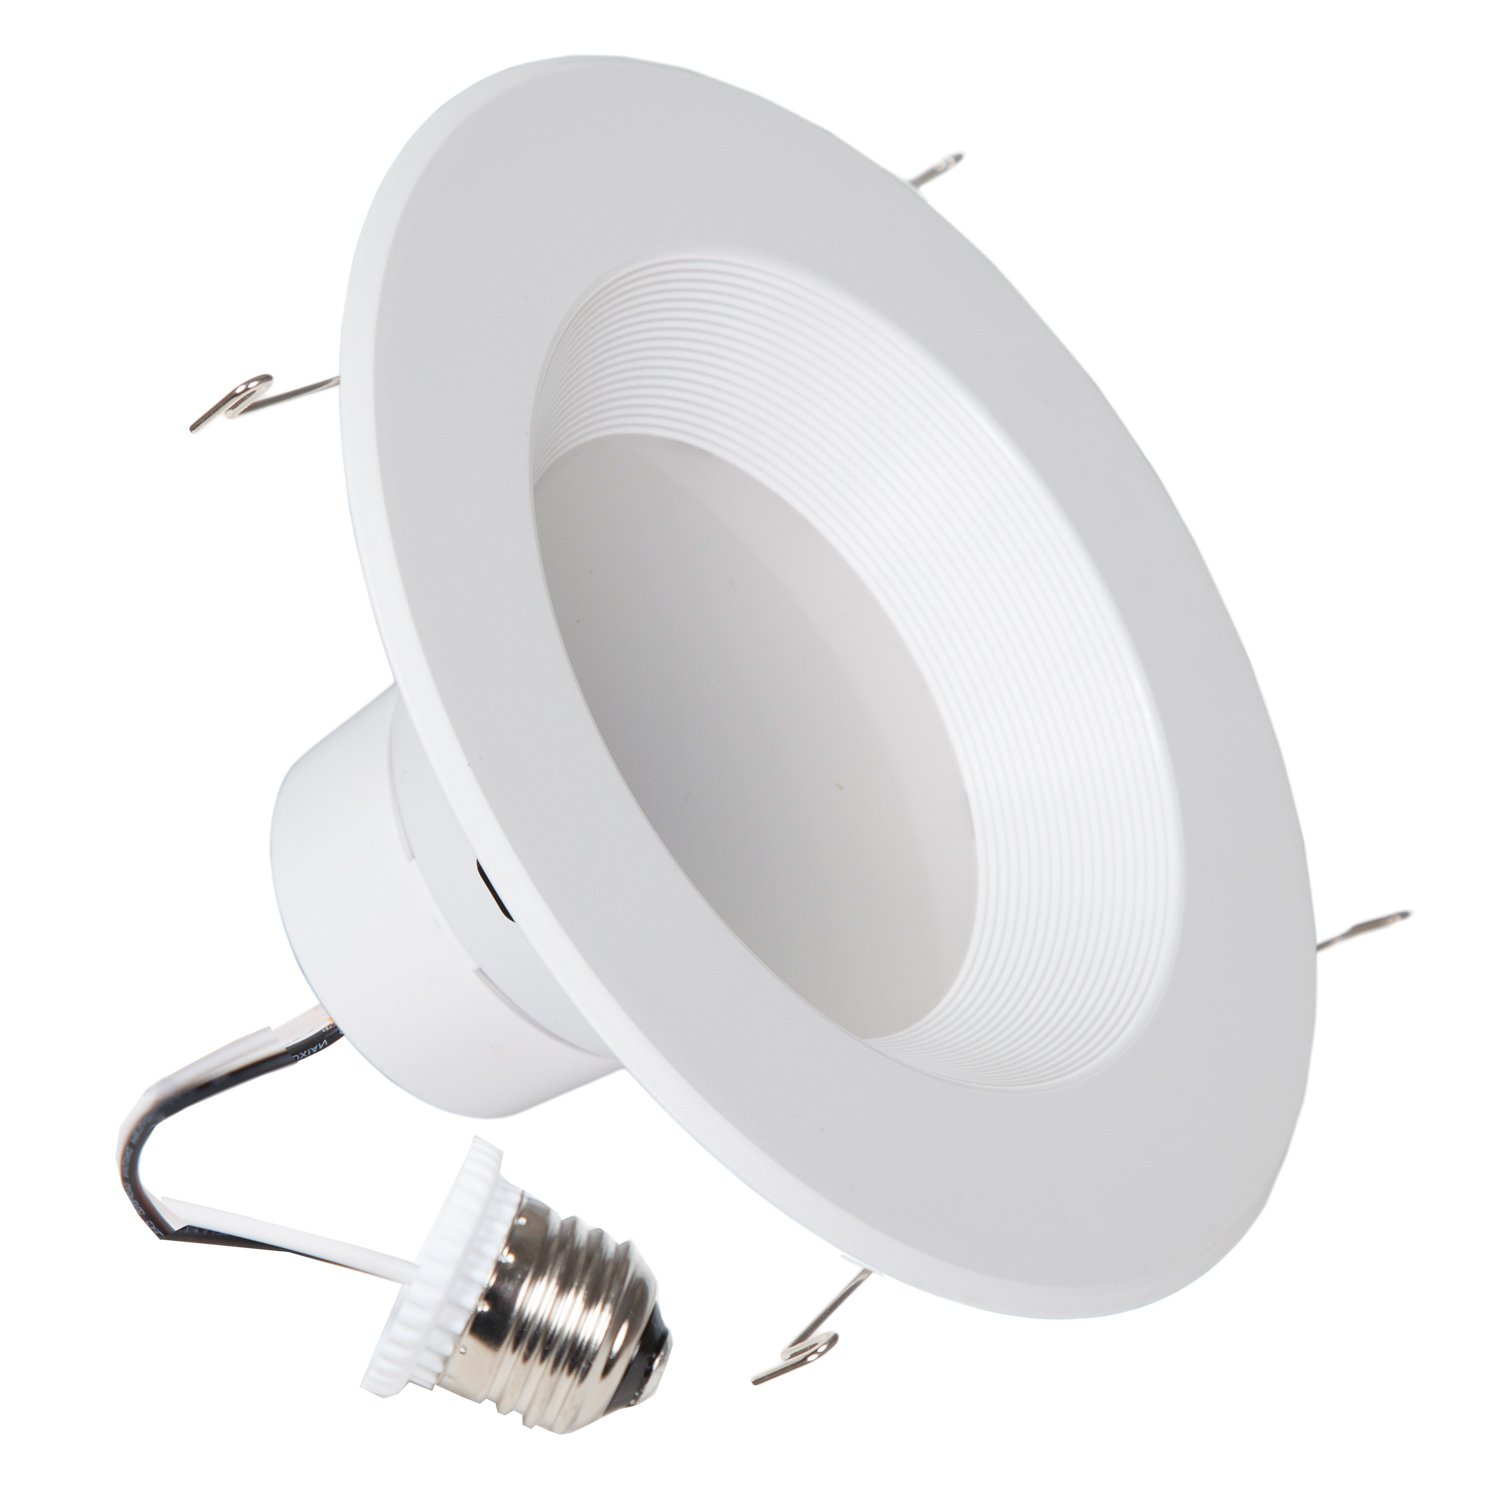 900 Lumens 6 Inch Maxxima Dimmable Led Retrofit Downlight Fixture How To Install Recessed Lighting For Dramatic Effect The Family 2700k Warm White Energy Star 90 Watt Equivalent Straight E26 Cable Connection 4 Pack